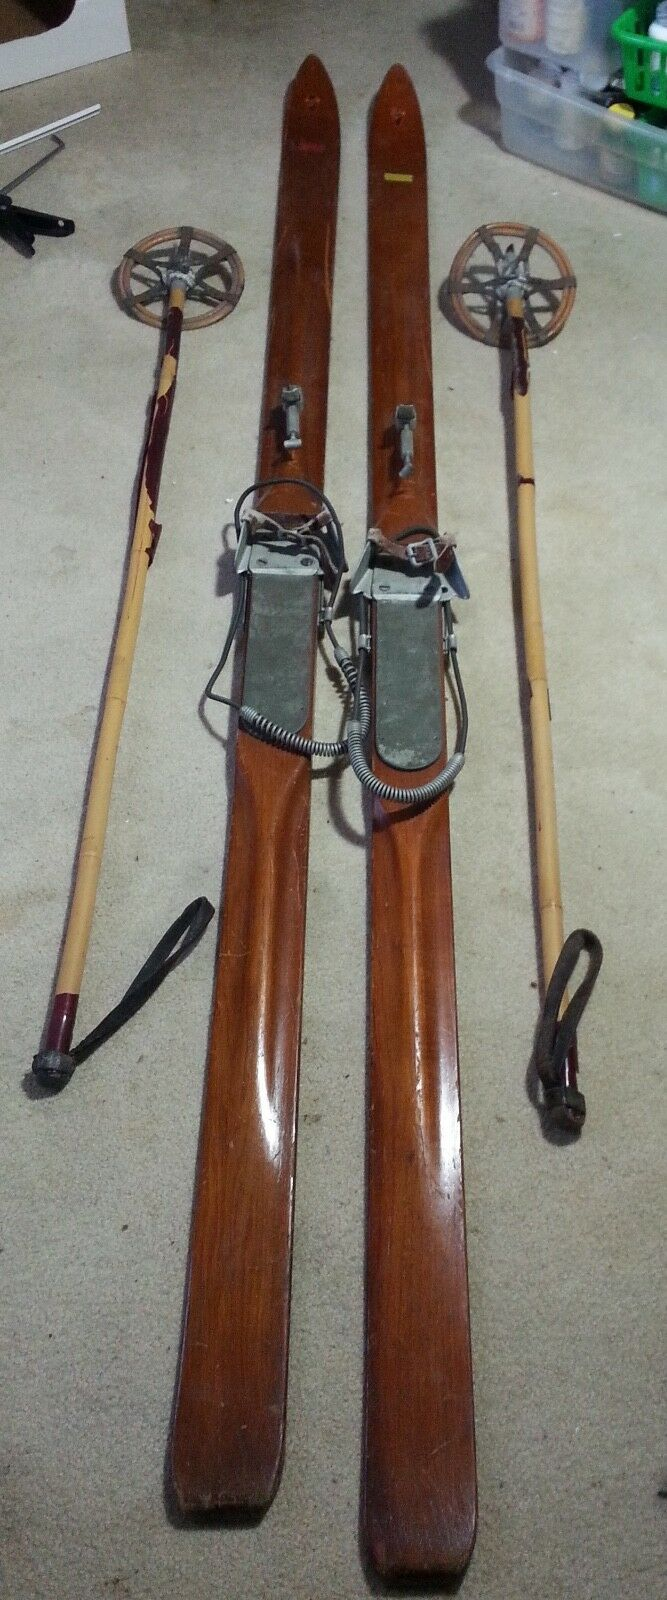 Antique Snow Ski's, 1920s, Wood and Leather Poles, Bamboo